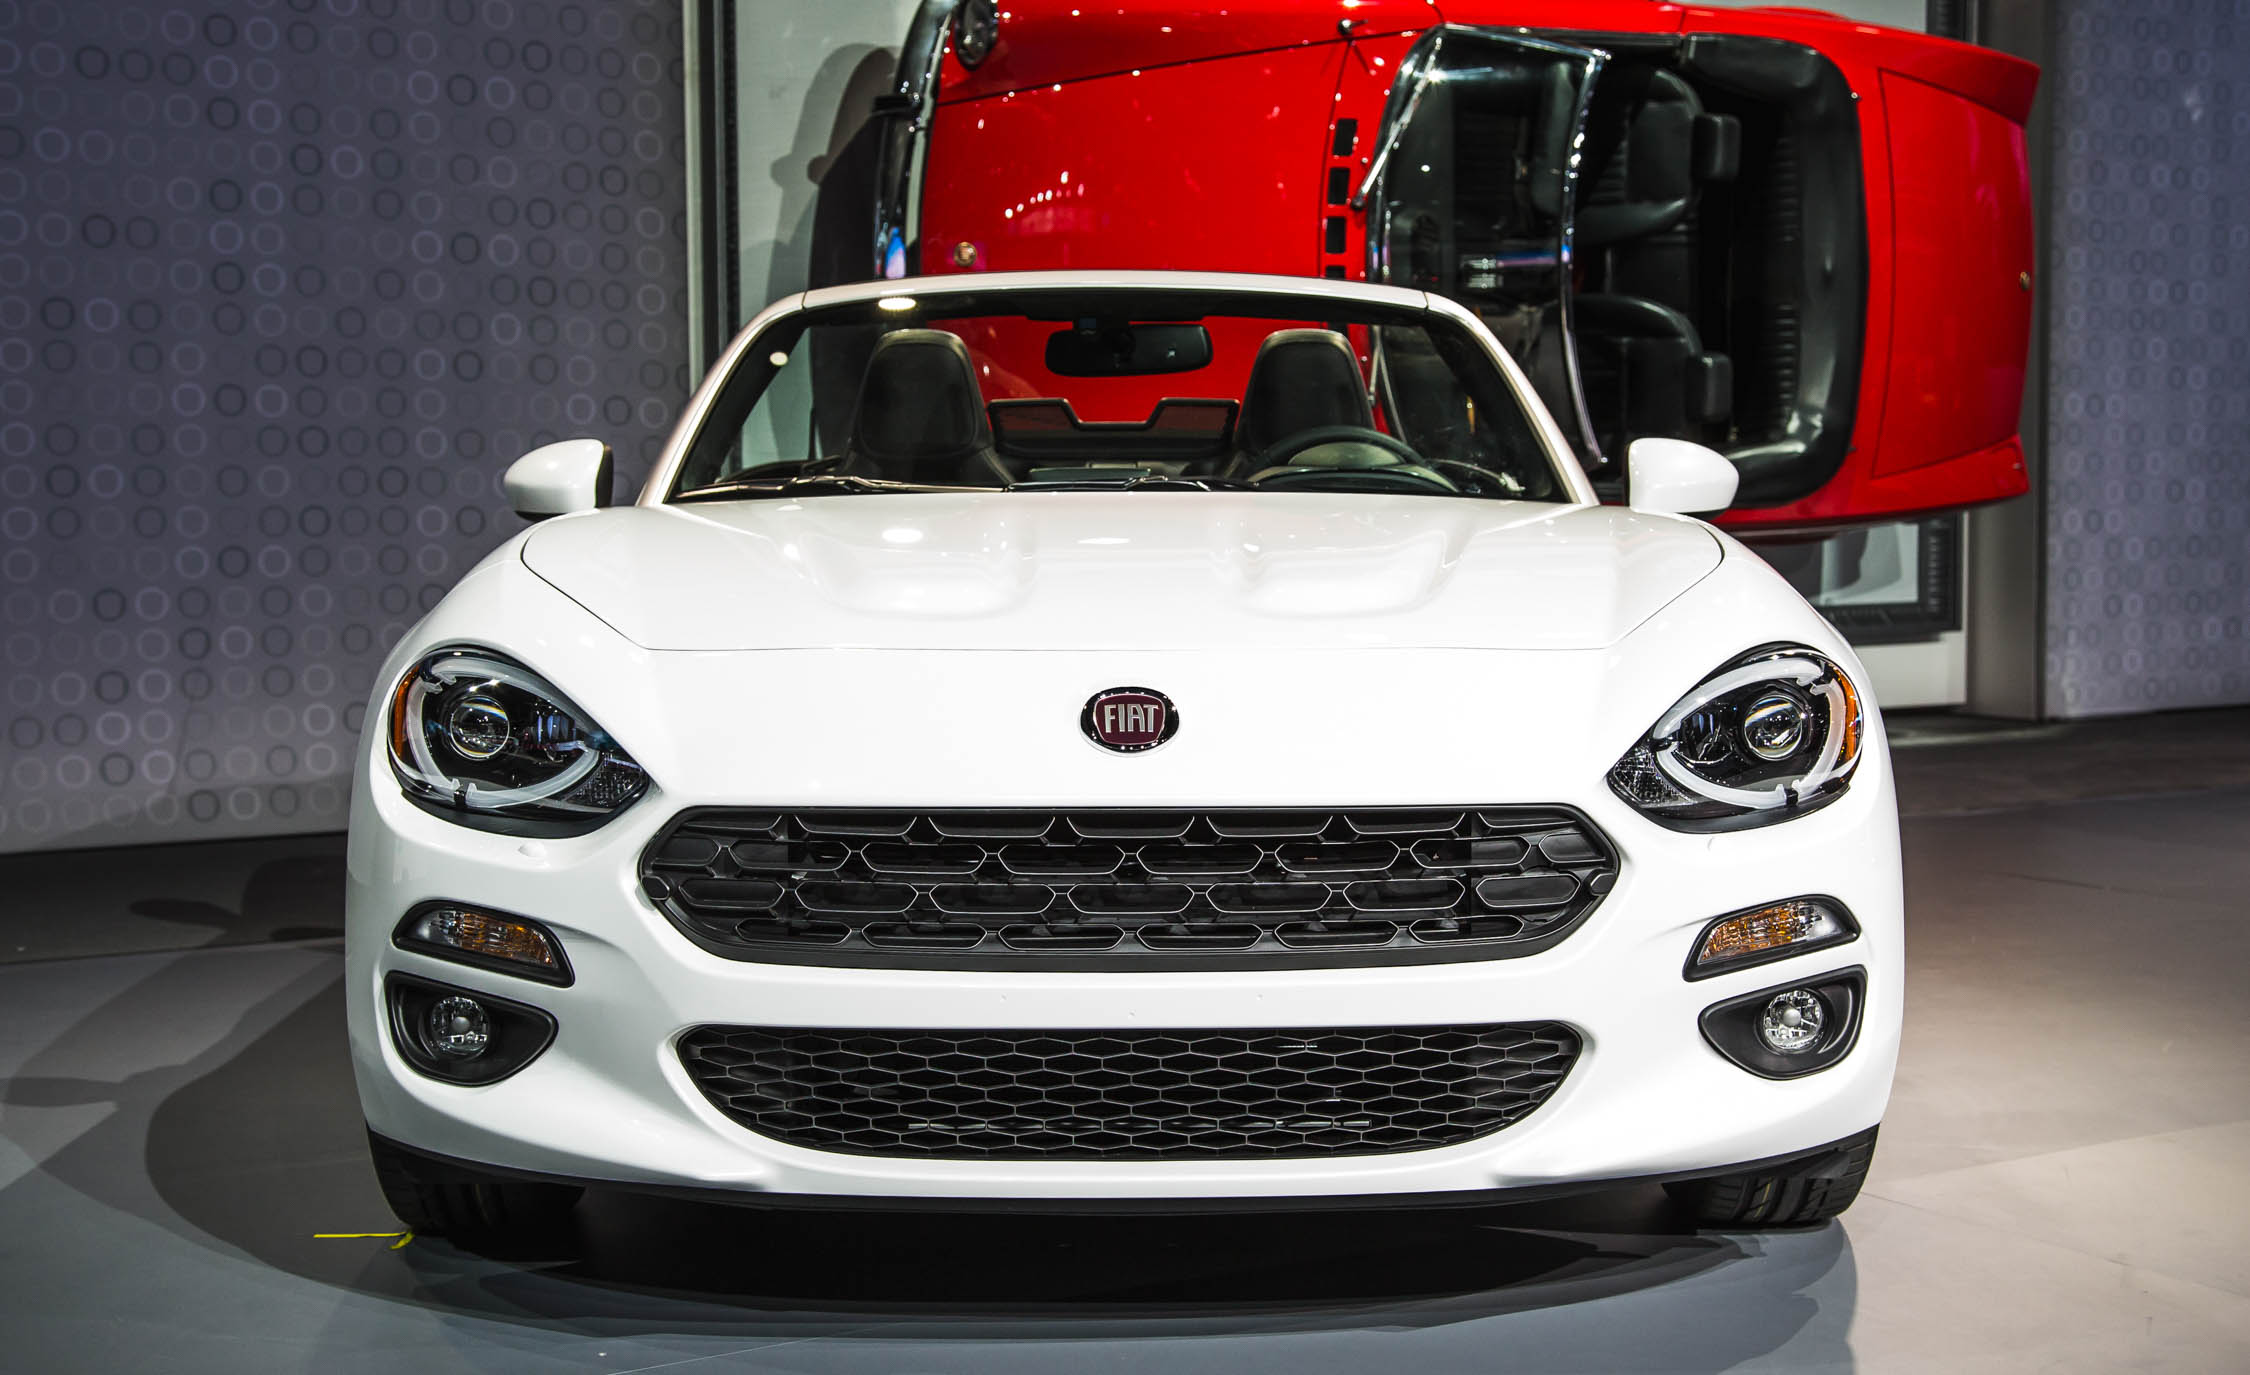 2017 Fiat 124 Spider White Front End Exterior (View 13 of 23)